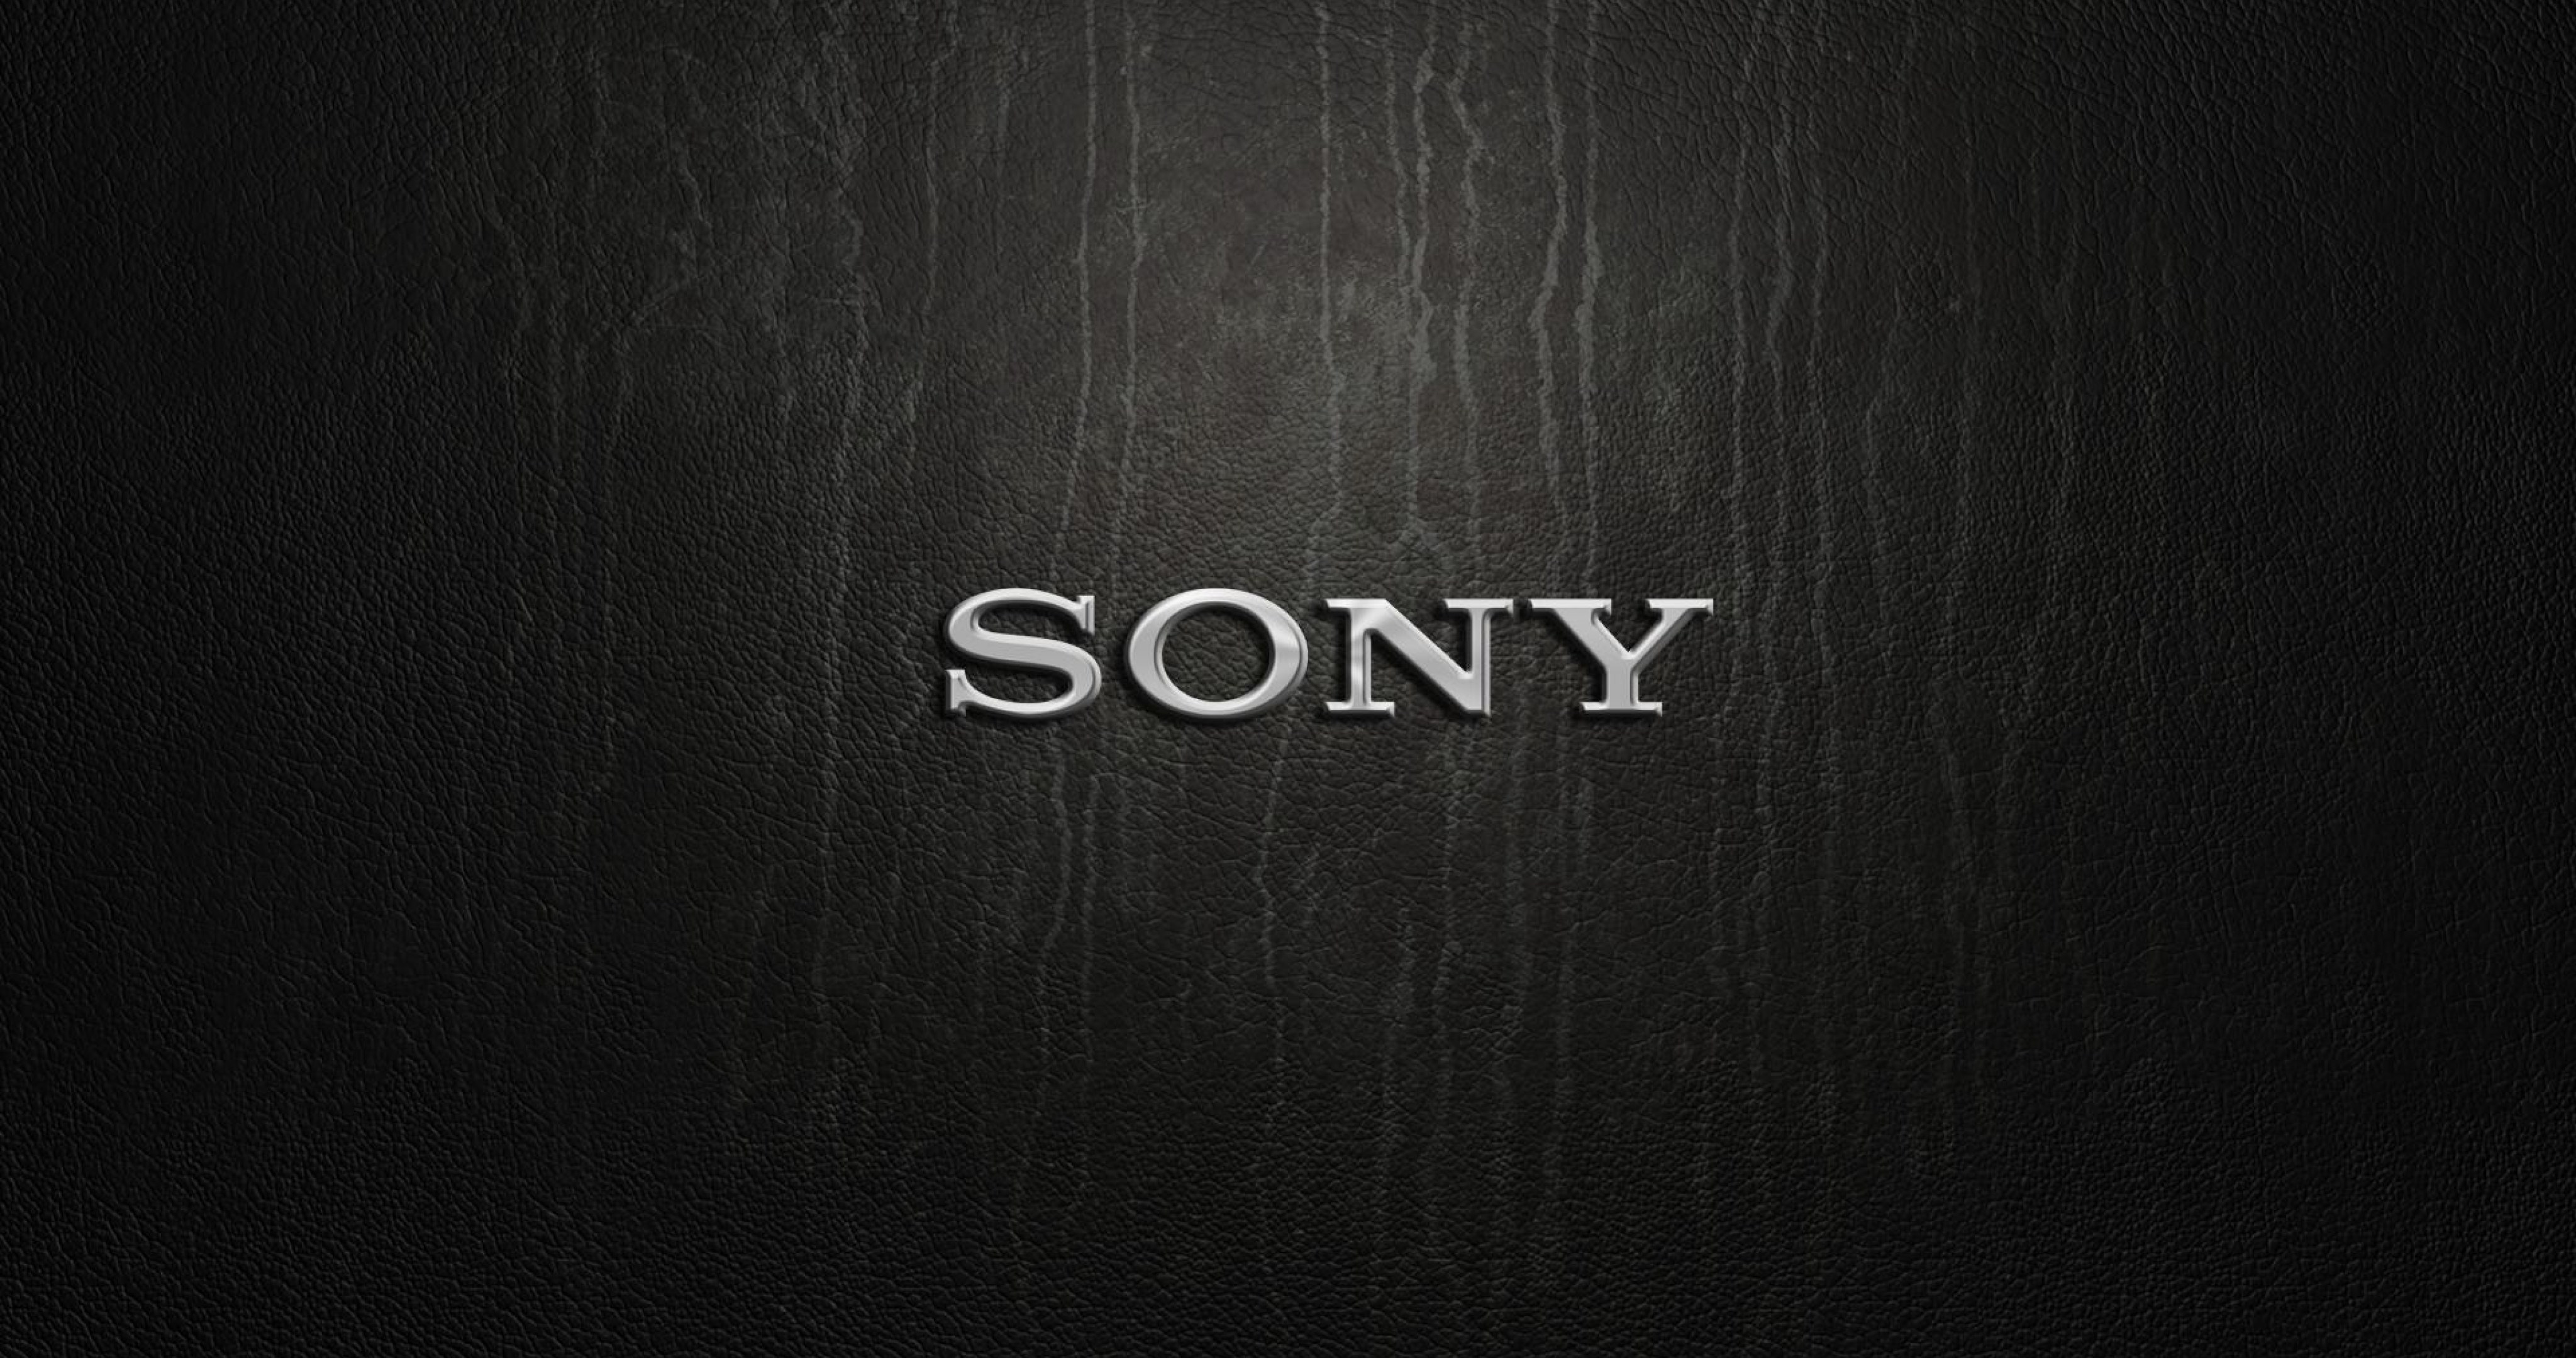 Sony Logo 4k Ultra Hd Wallpaper » High Quality Walls